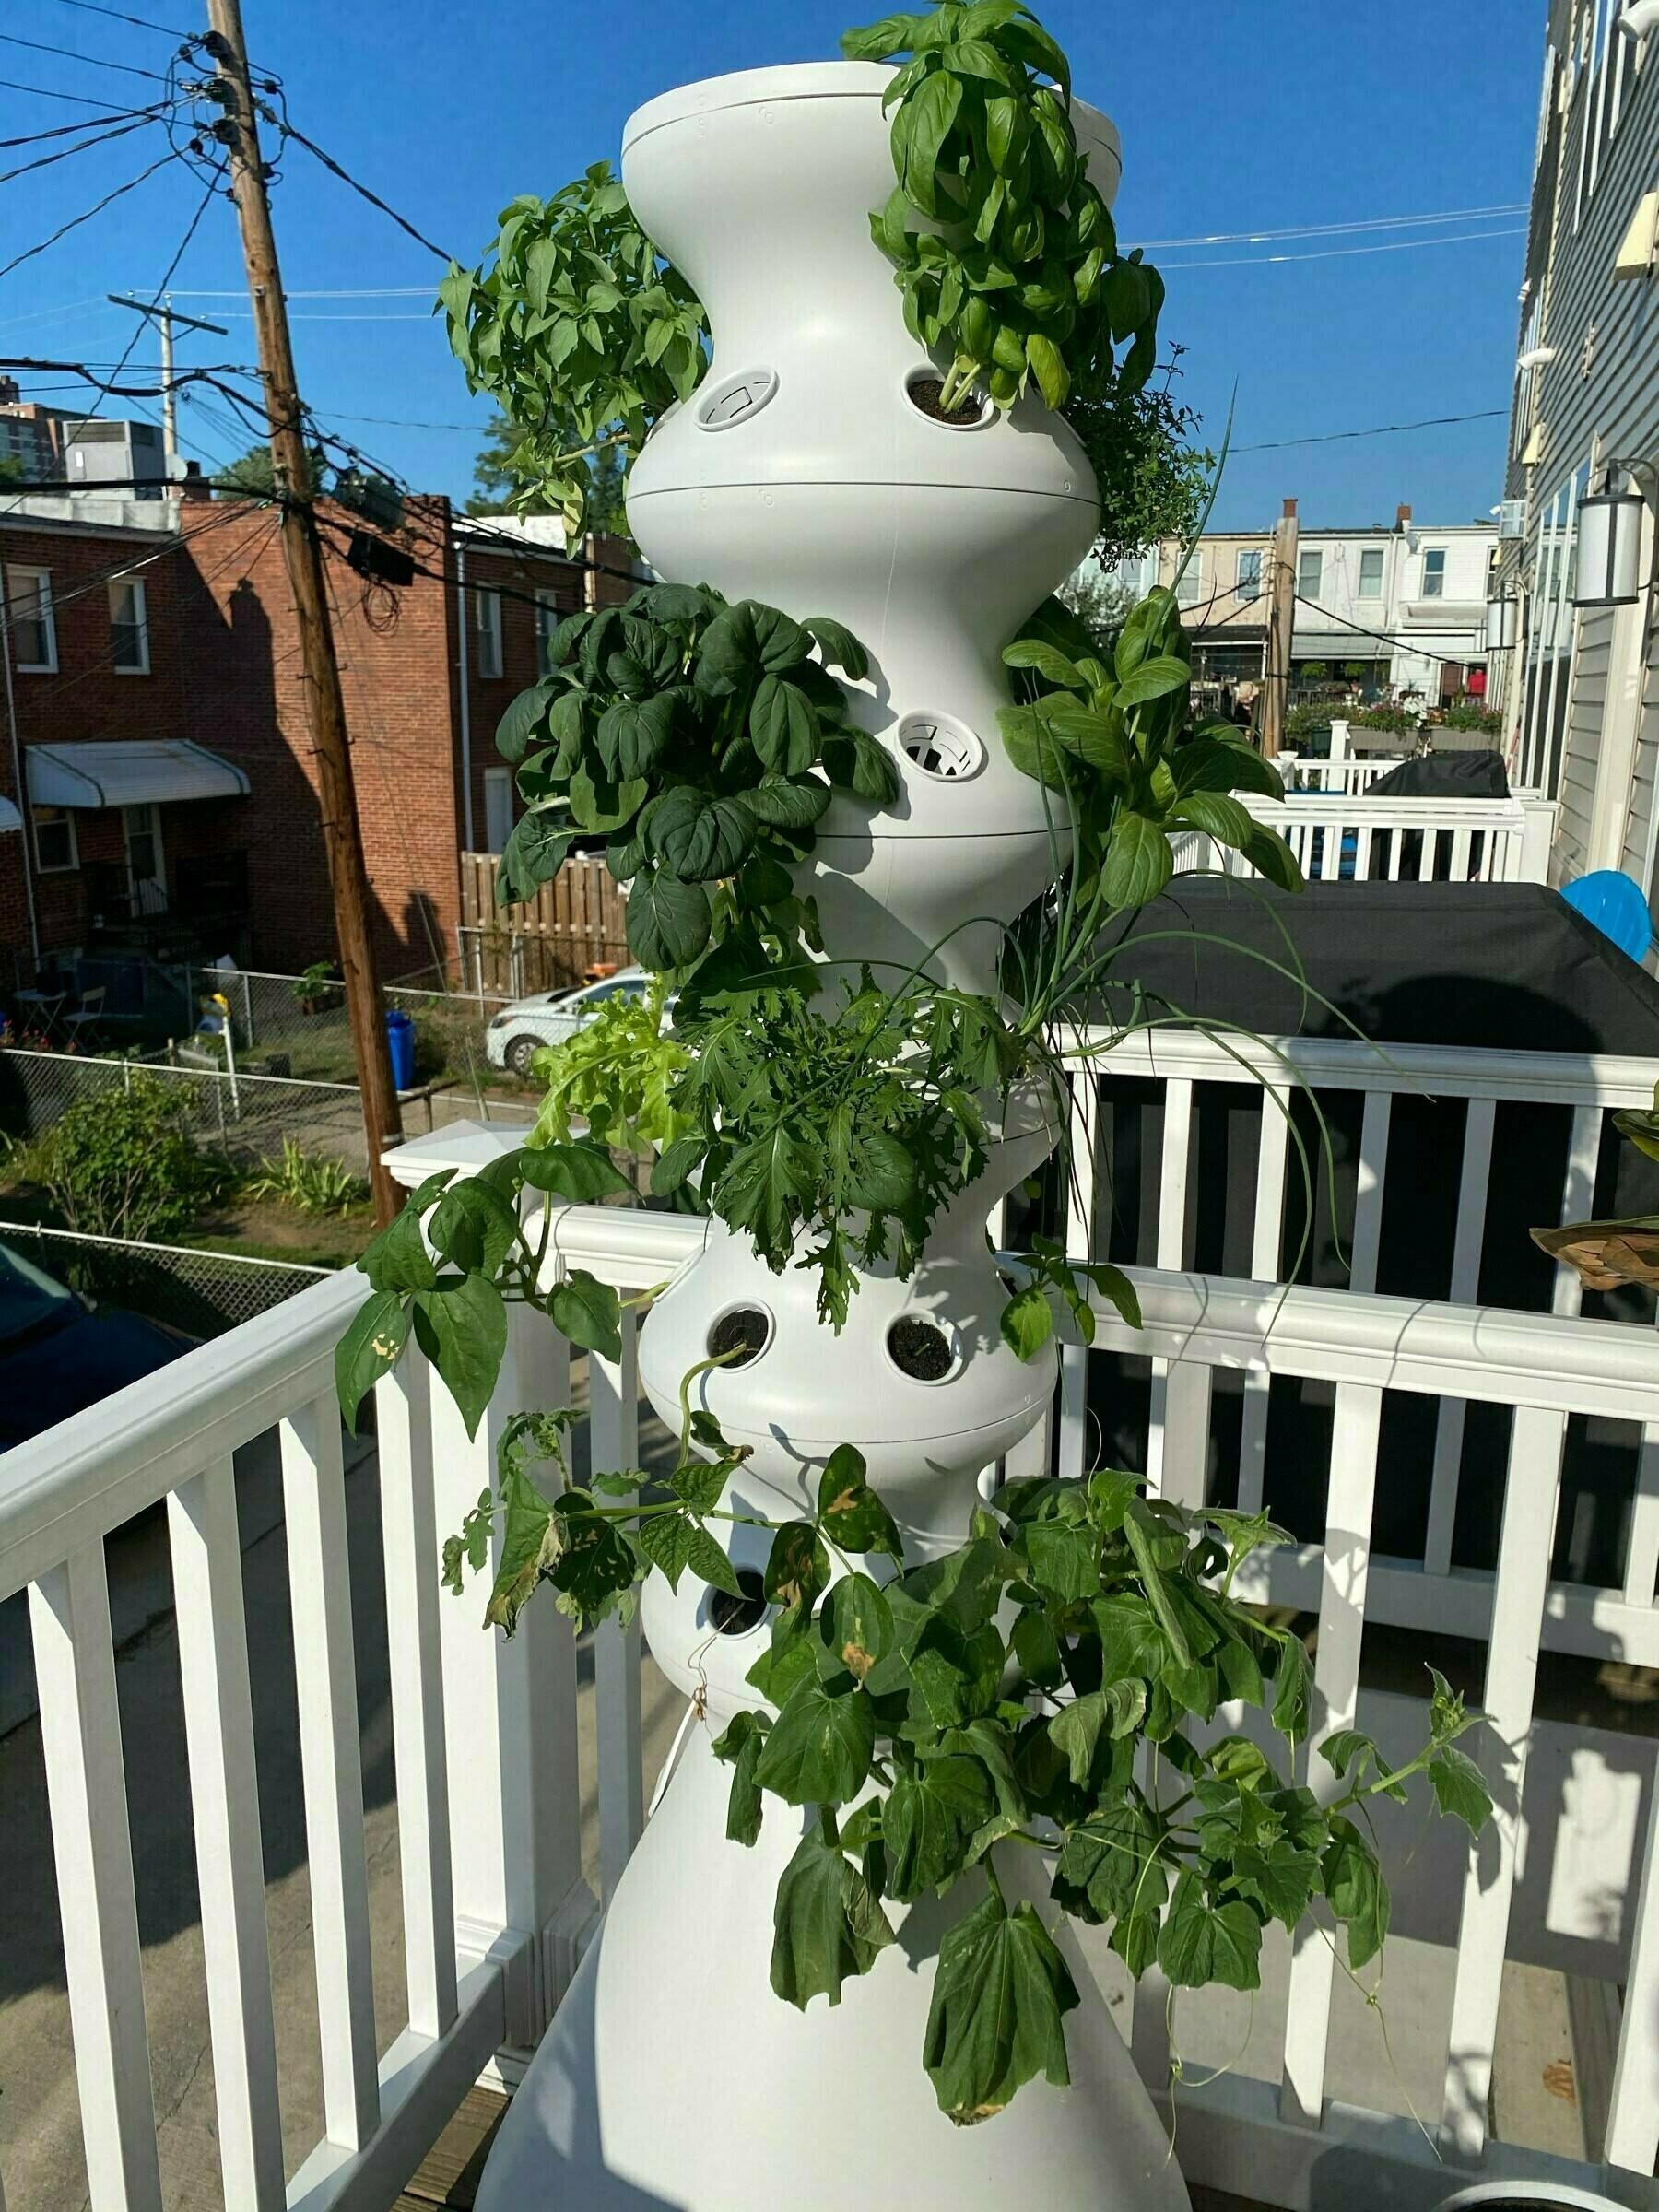 Vertical white hydroponic planter with vegetables growing.